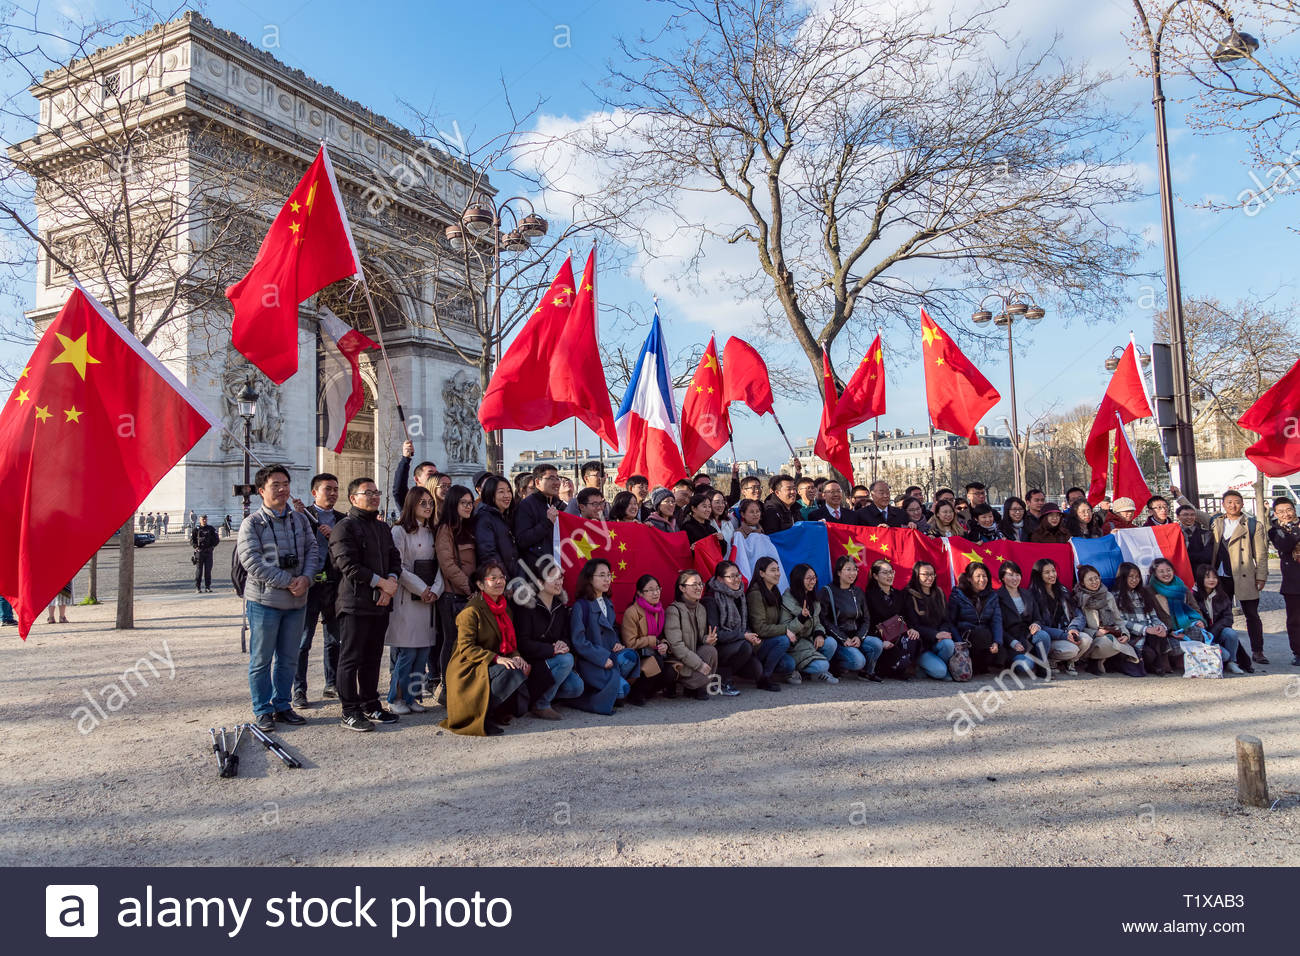 Chinese with chinese and french flags for Xi Jinping visite in france in March 2019 - Stock Image